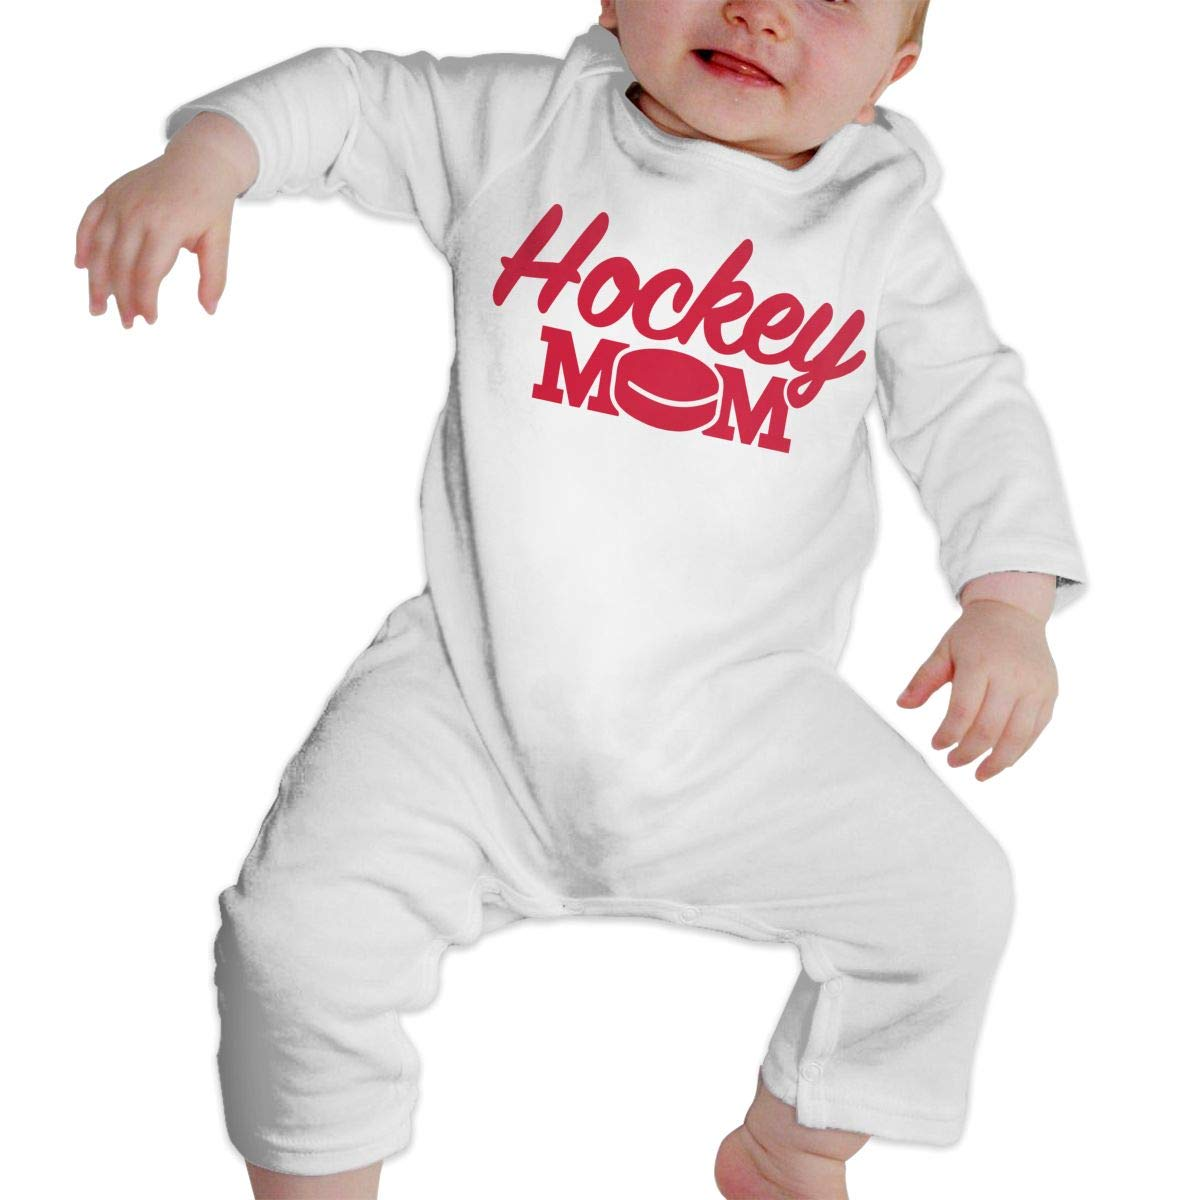 A1BY-5US Newborn Baby Boys Girls Cotton Long Sleeve Hockey Mom Baby Clothes One-Piece Romper Clothes